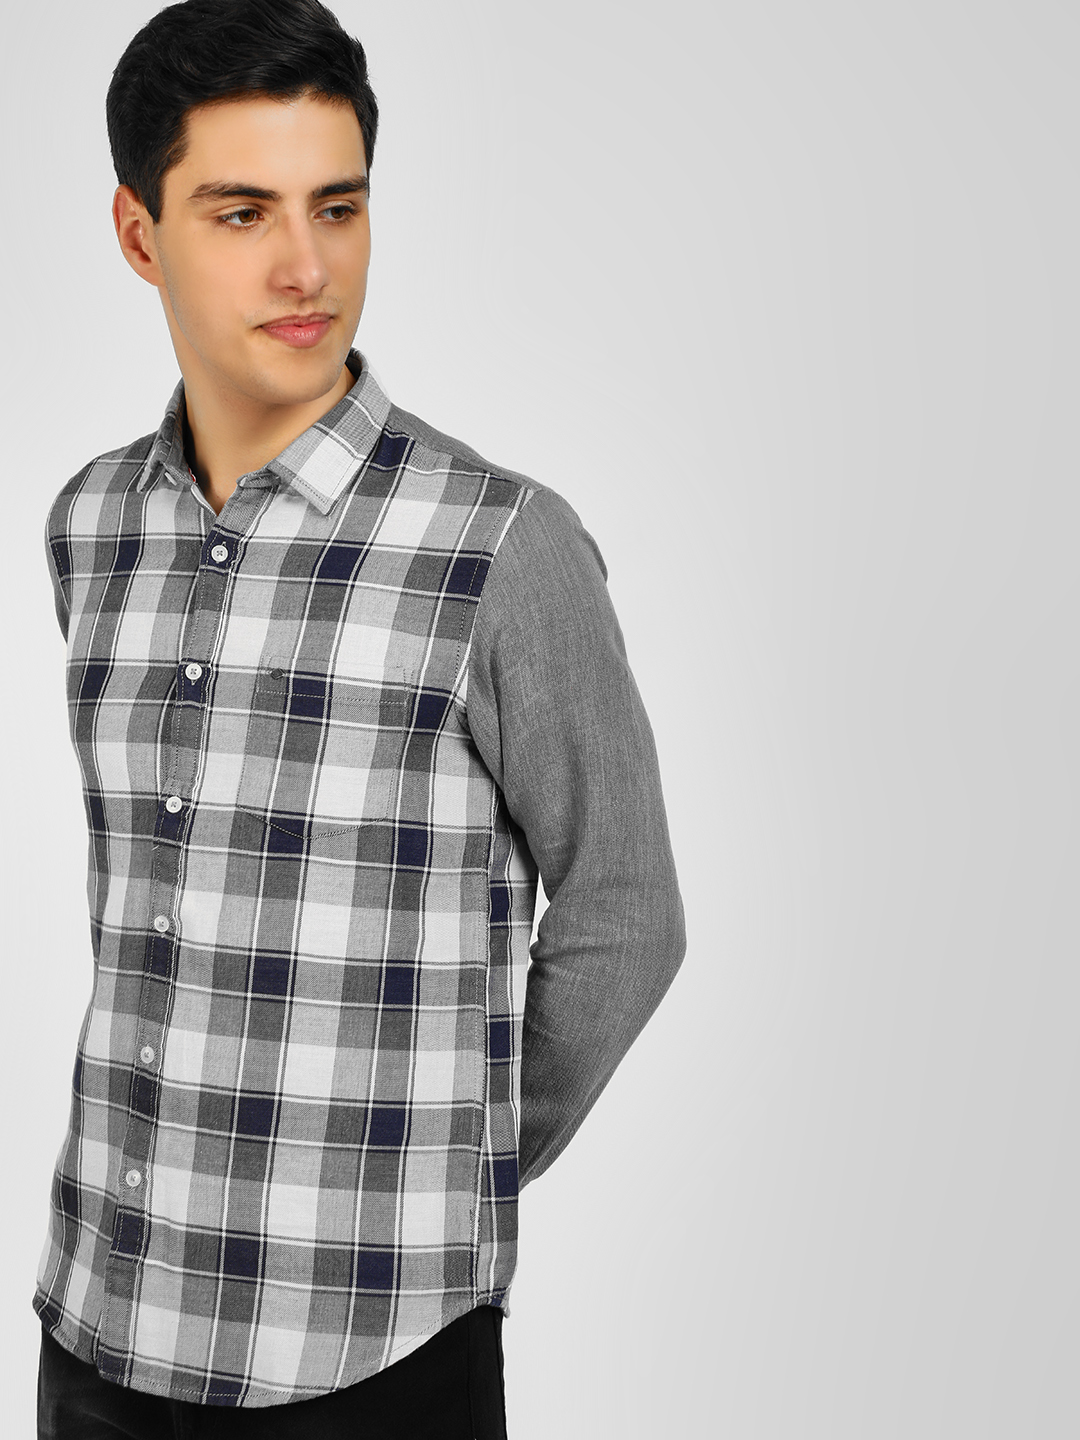 Lee Cooper Grey Long Sleeve Woven Check Shirt 1